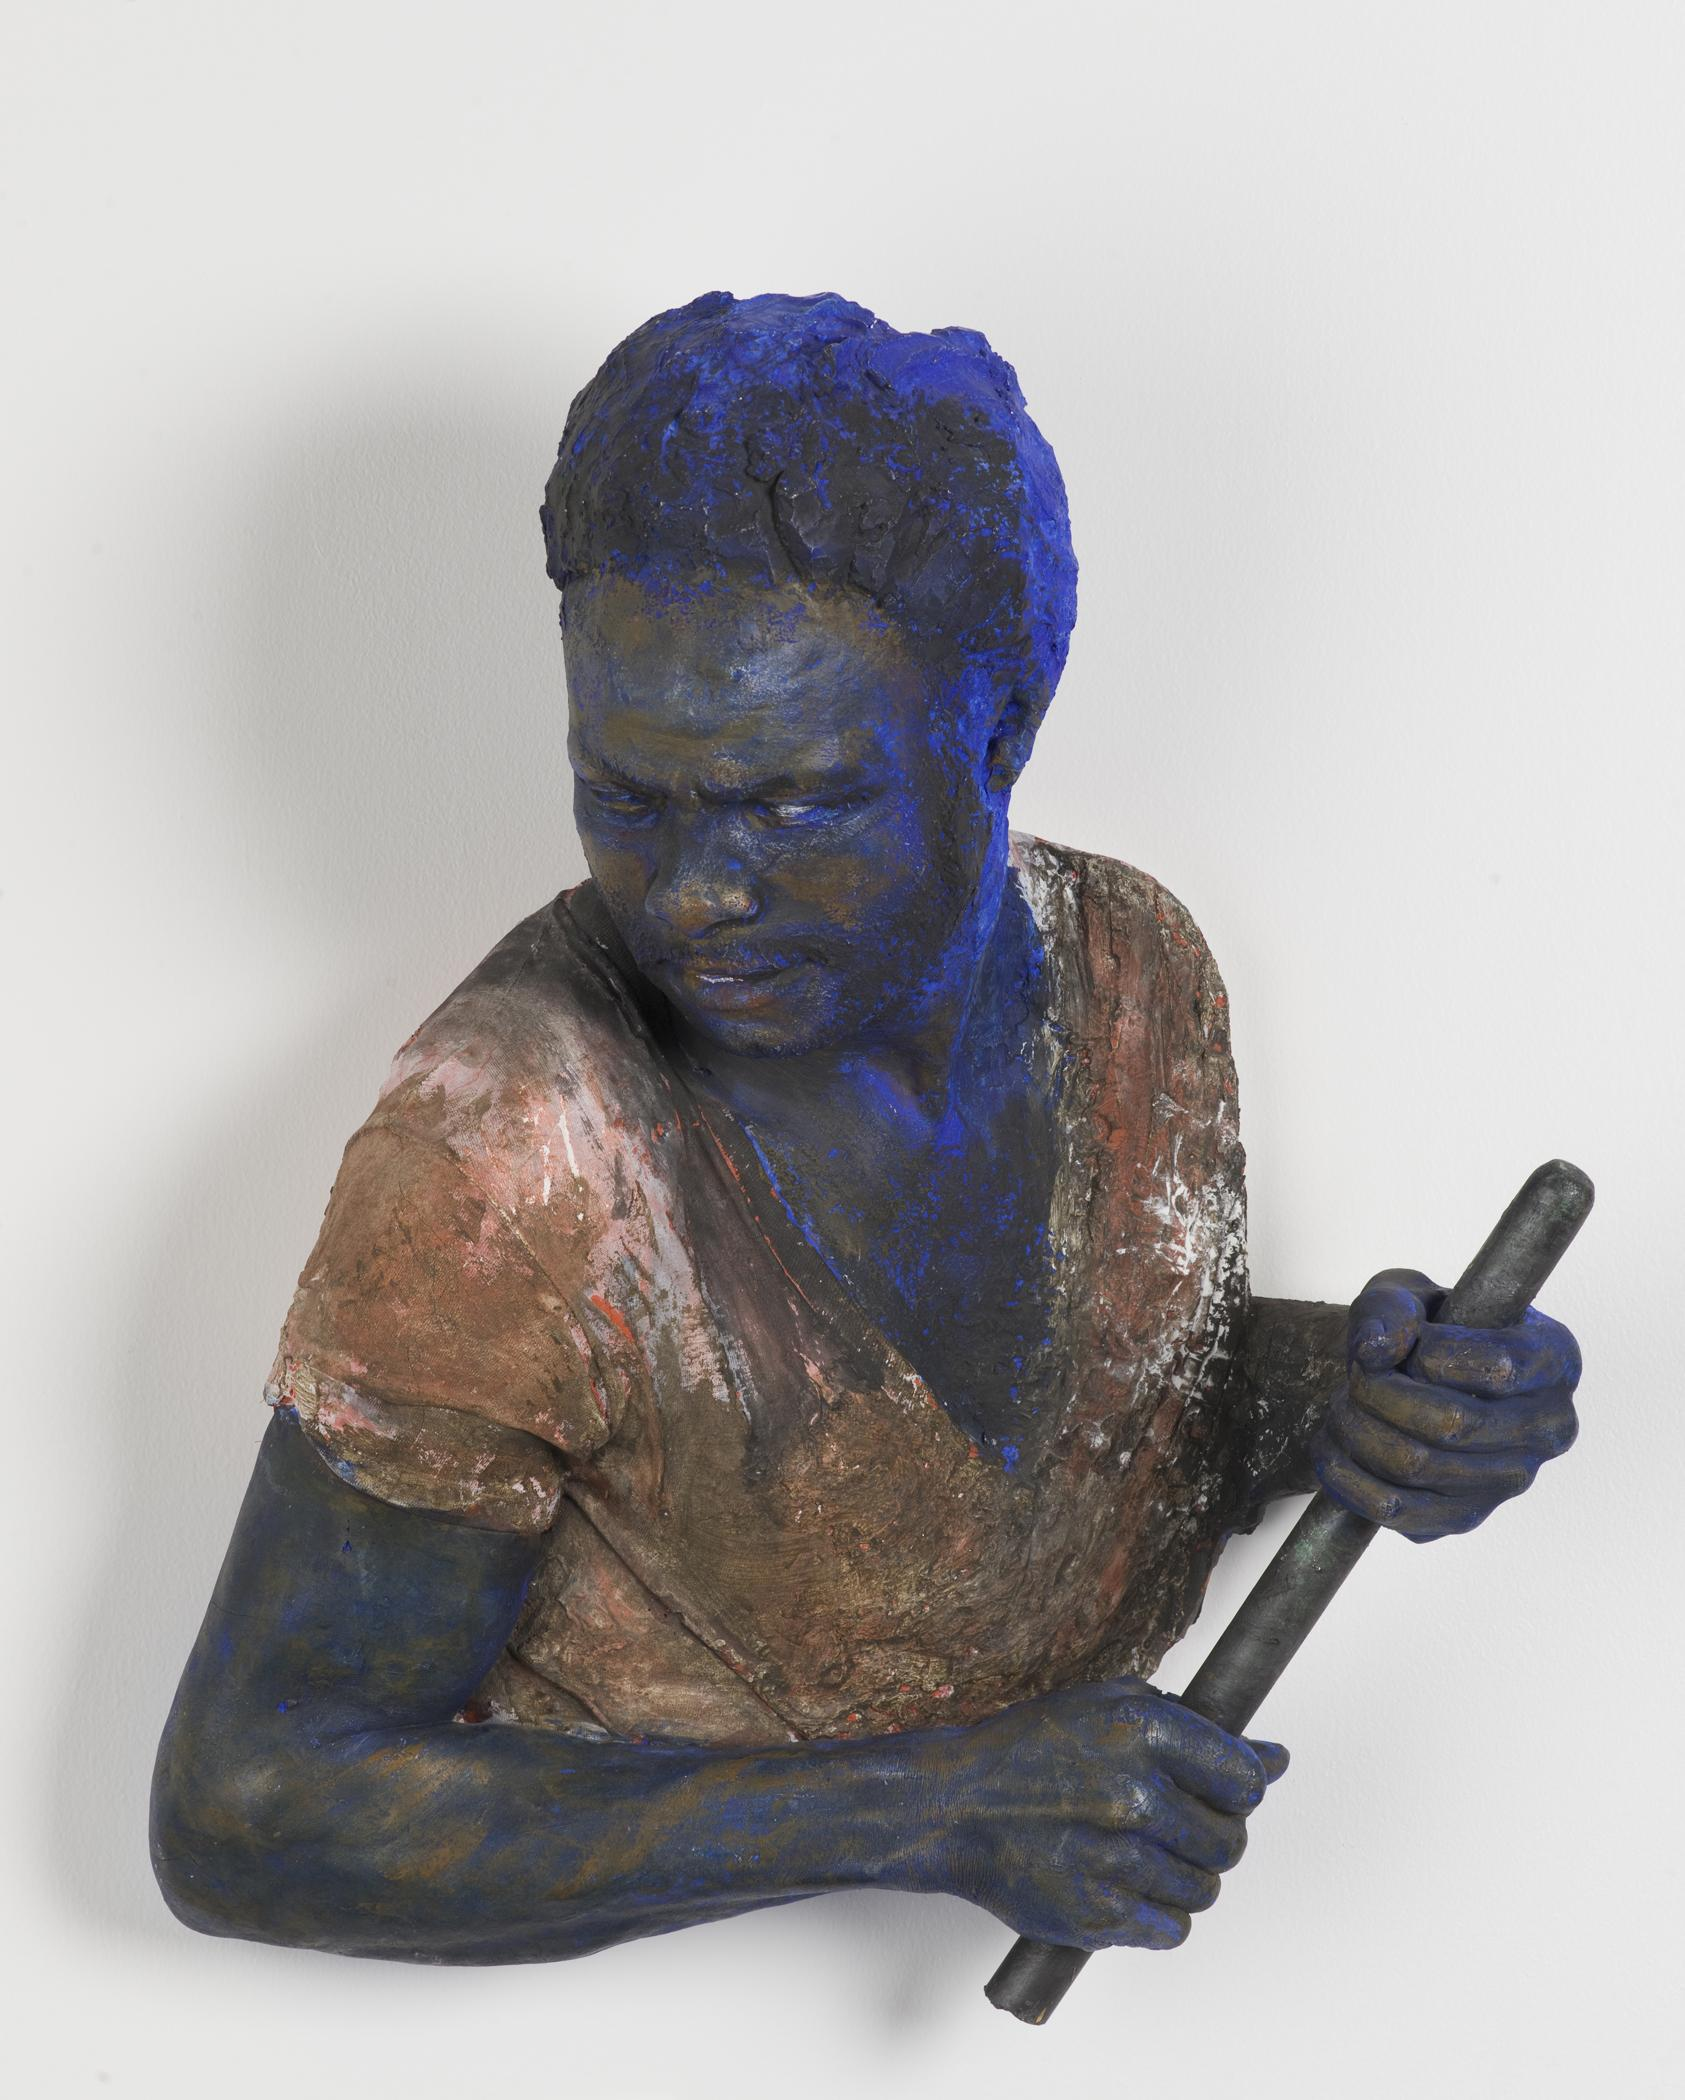 A bust of a dark-skinned person is holding a short, narrow pole while looking over their right shoulder. The bust appears to be dusted with cobalt-blue powder.